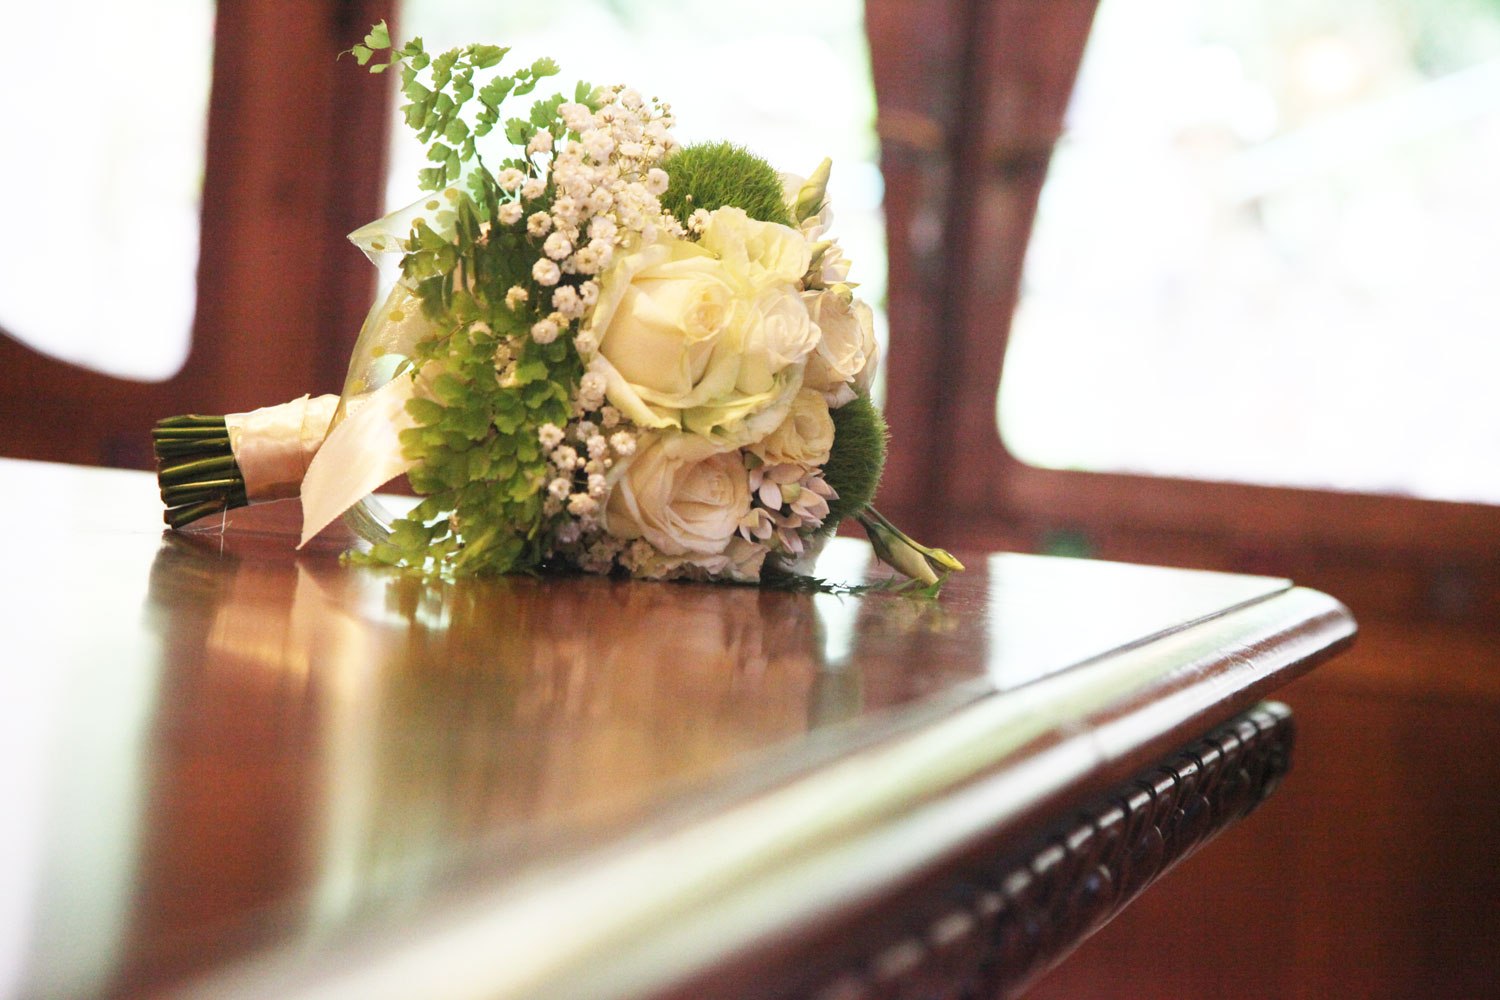 Bridal bouquet created by Giuseppina Comoli the floral designer